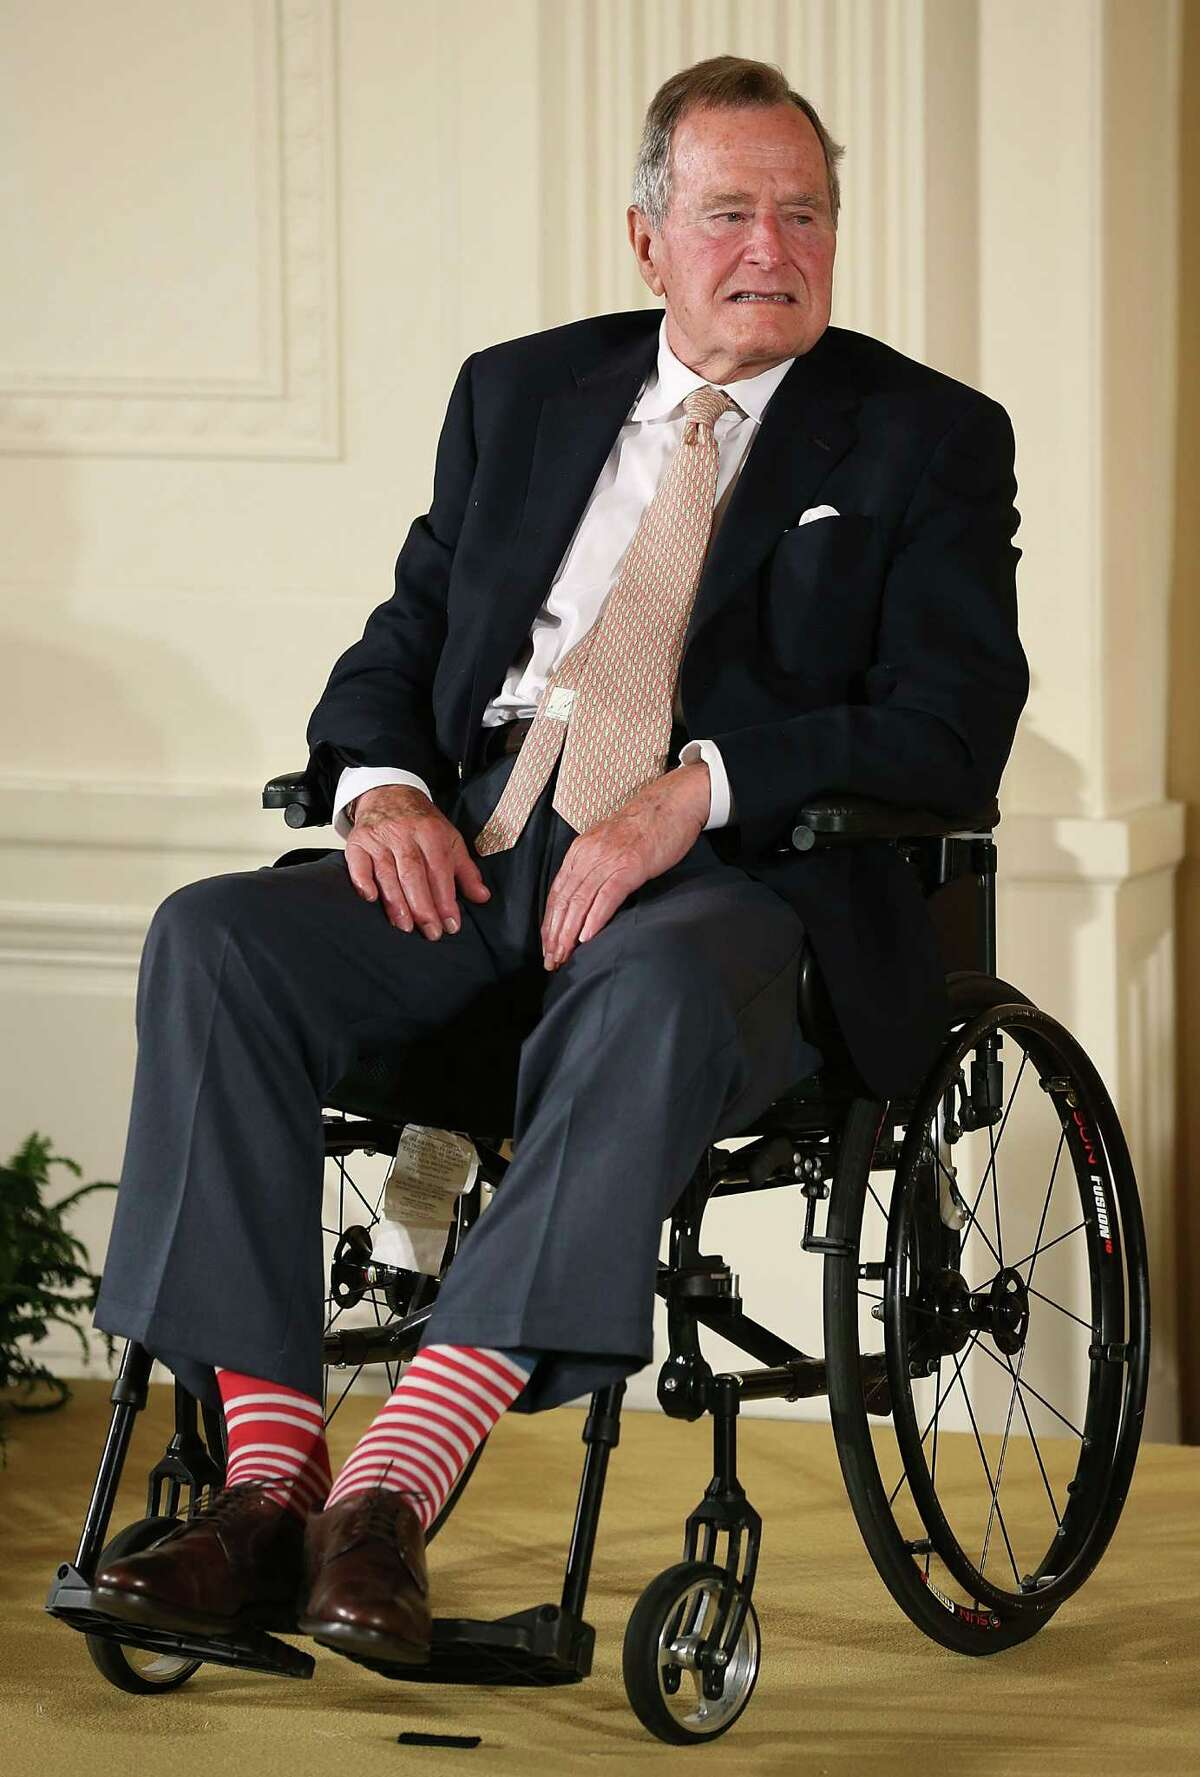 FILE - DECEMBER 24, 2014: It was reported that former U.S. President George H.W. Bush was hospitalized after experiencing a shortness of breath December 24, 2014 in Houston, Texas. WASHINGTON, DC - JULY 15: Former President George H. W. Bush wears red stripped socks as he sits in a wheelchair during an event in the East Room at the White House, July 15, 2013 in Washington, DC. Bush joined President Obama in hosting the event to honor the 5,000th Daily Point of Light Award winner. (Photo by Mark Wilson/Getty Images)